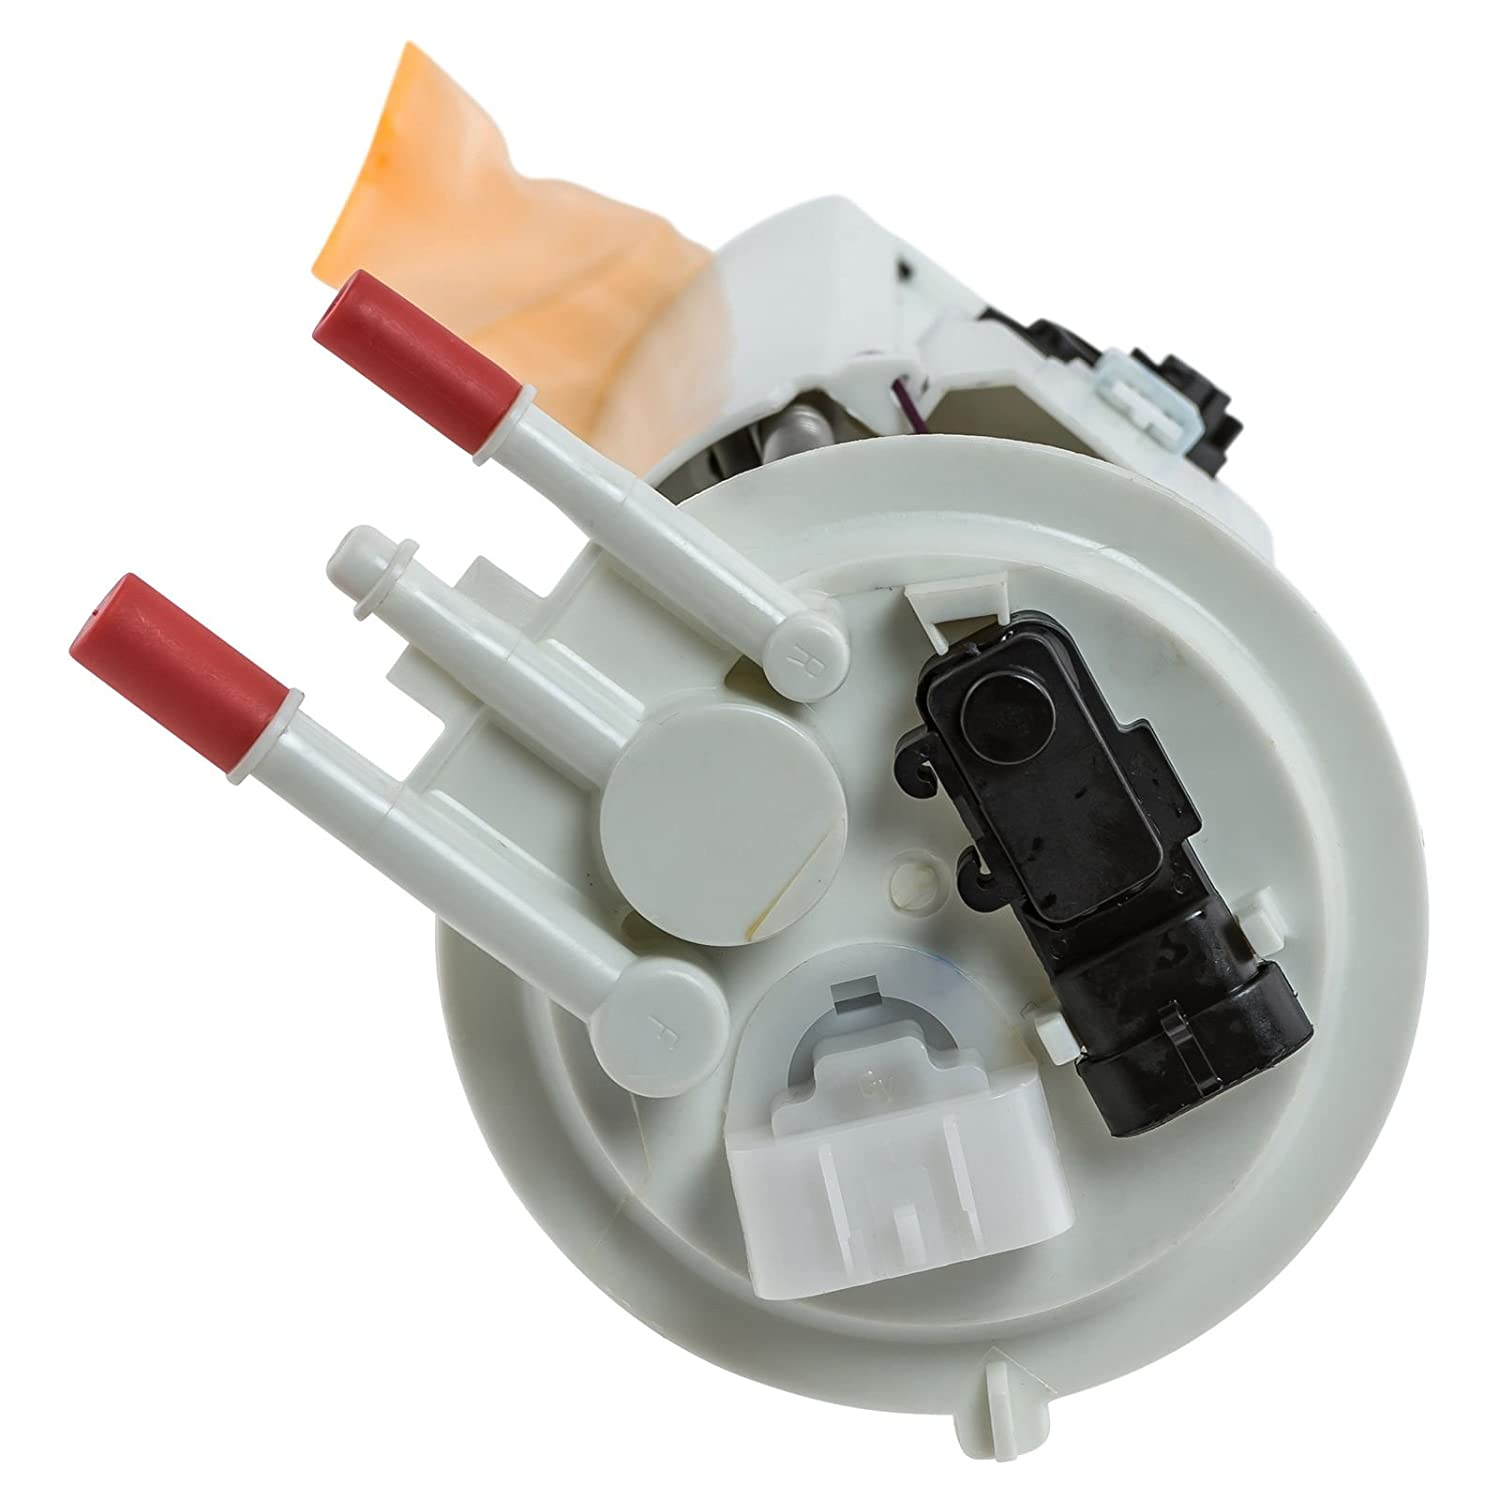 Amazon.com: Fuel Pump For 1998-2000 Isuzu Rodeo Honda Passport w/Sending Unit fits E8397M: Automotive